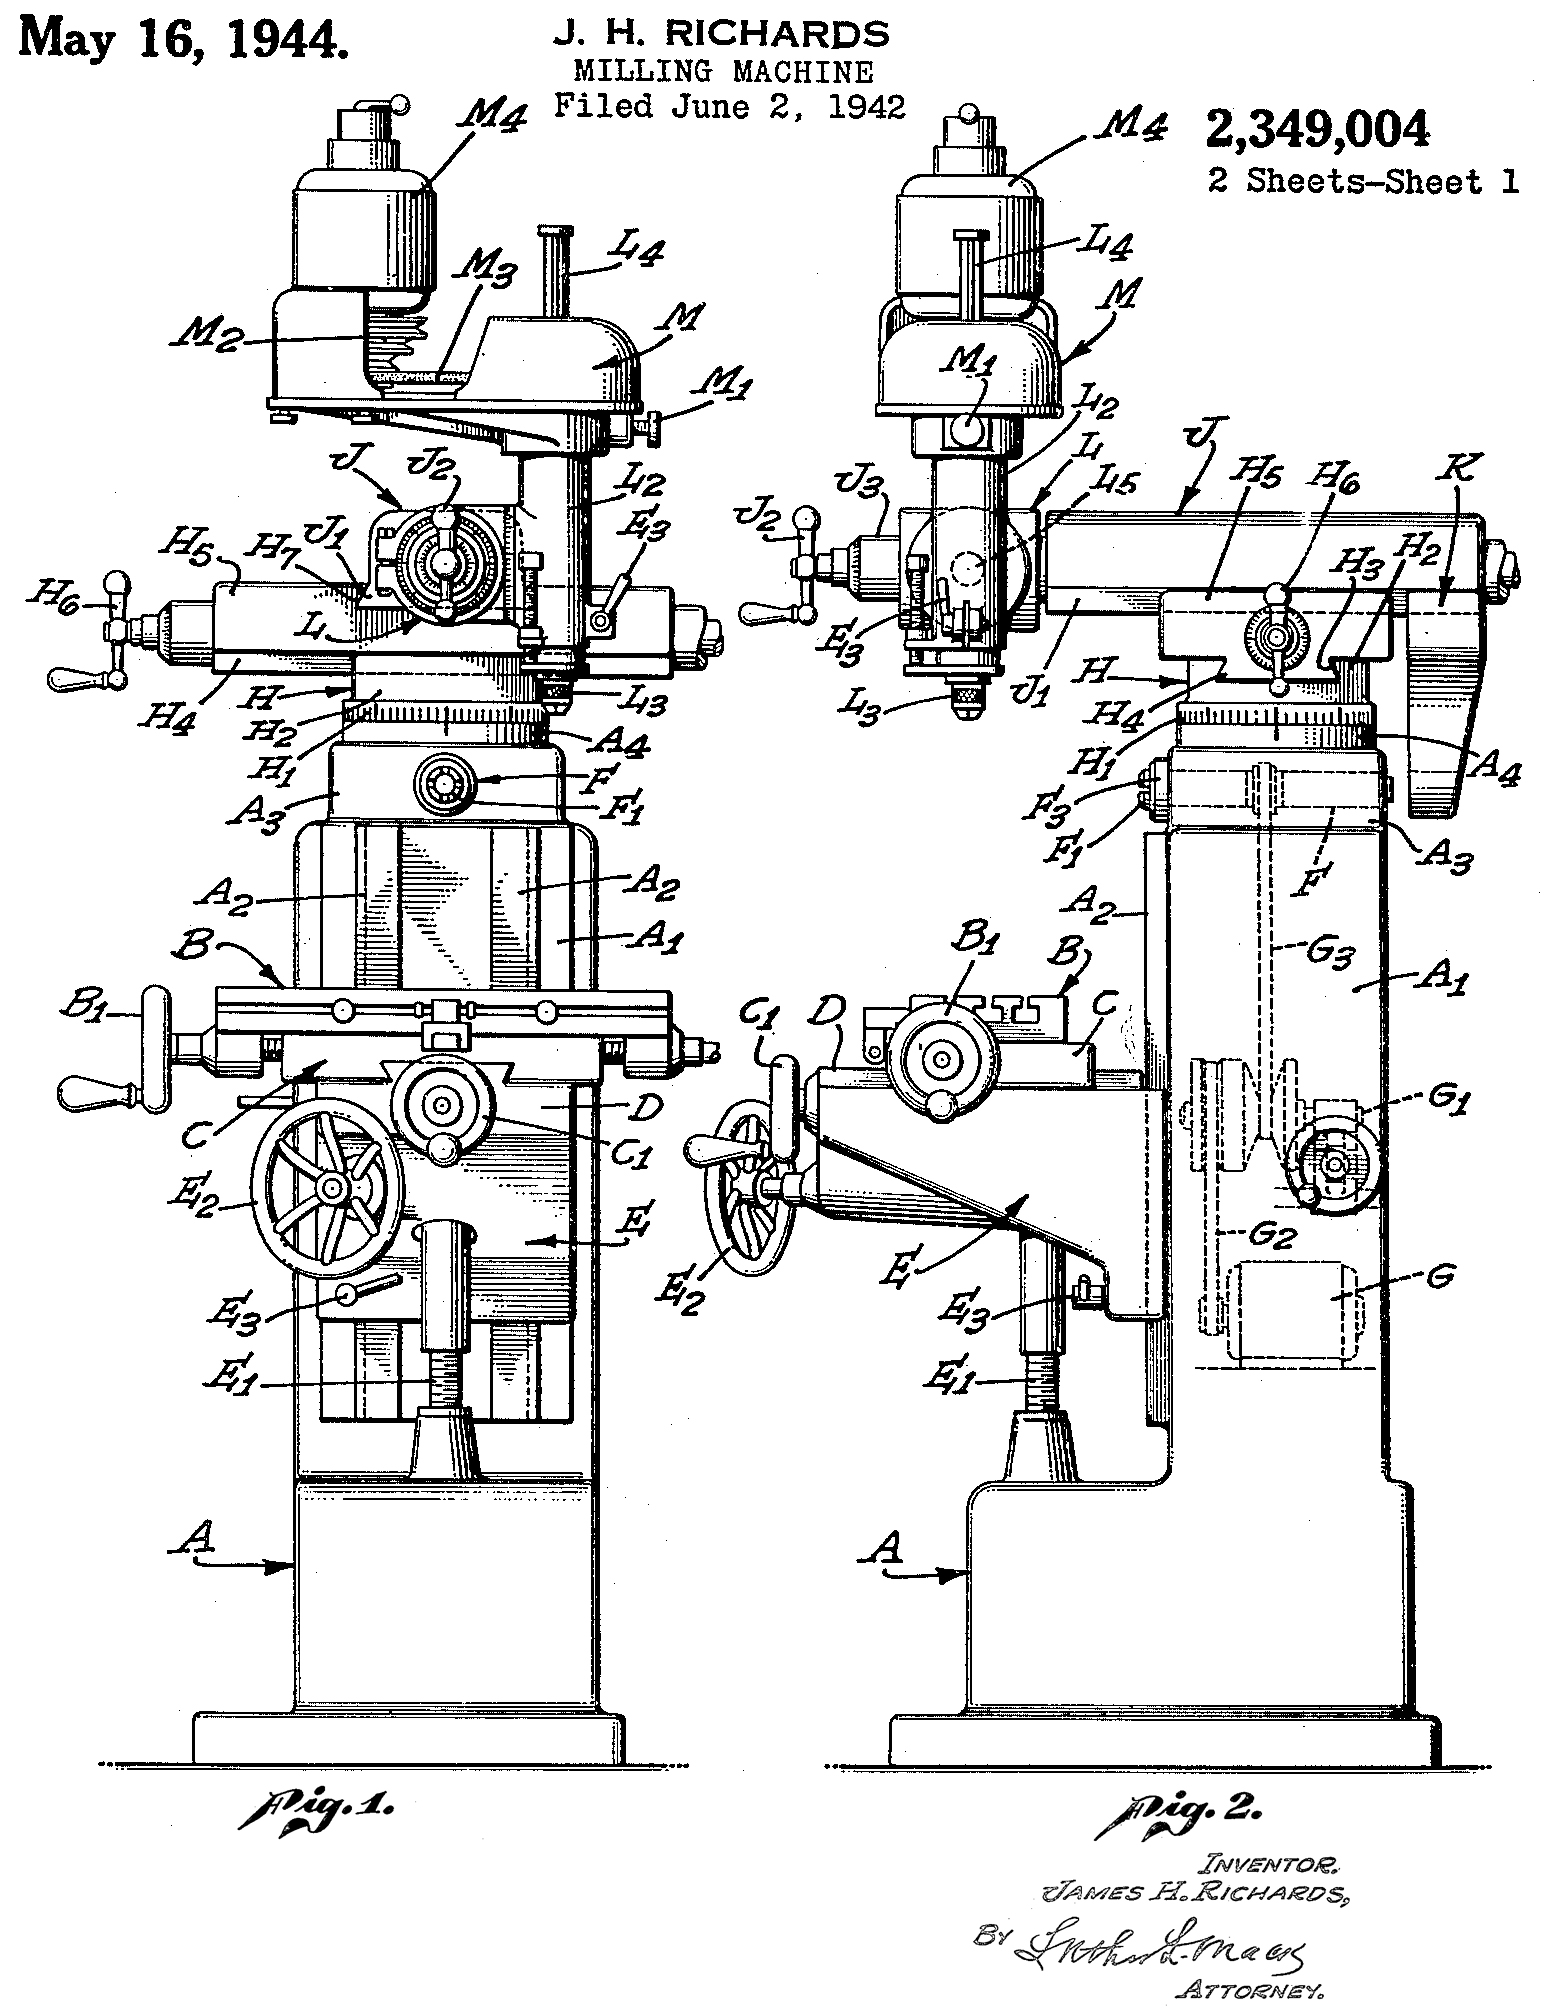 Fray Milling Machines Page 2